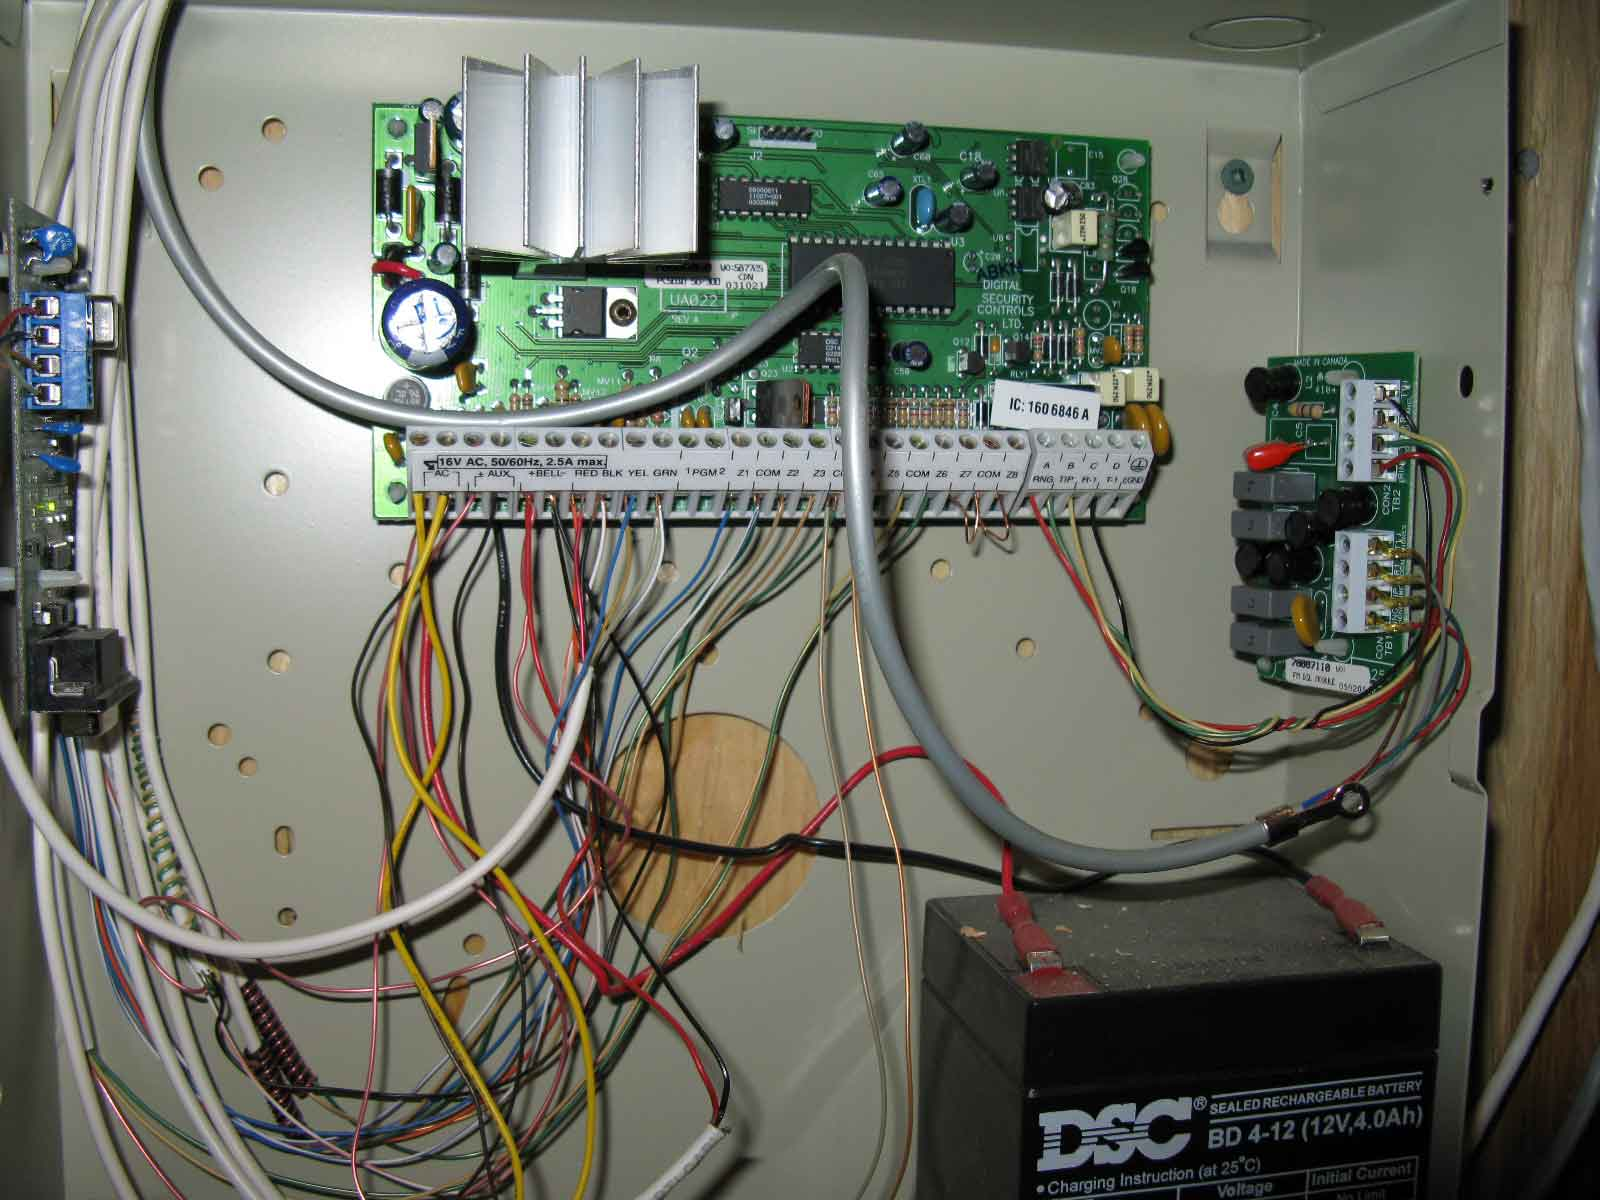 Dsc 1832 Panel Pc1832 Wiring Diagram Security System Zone Expander 1600x1200